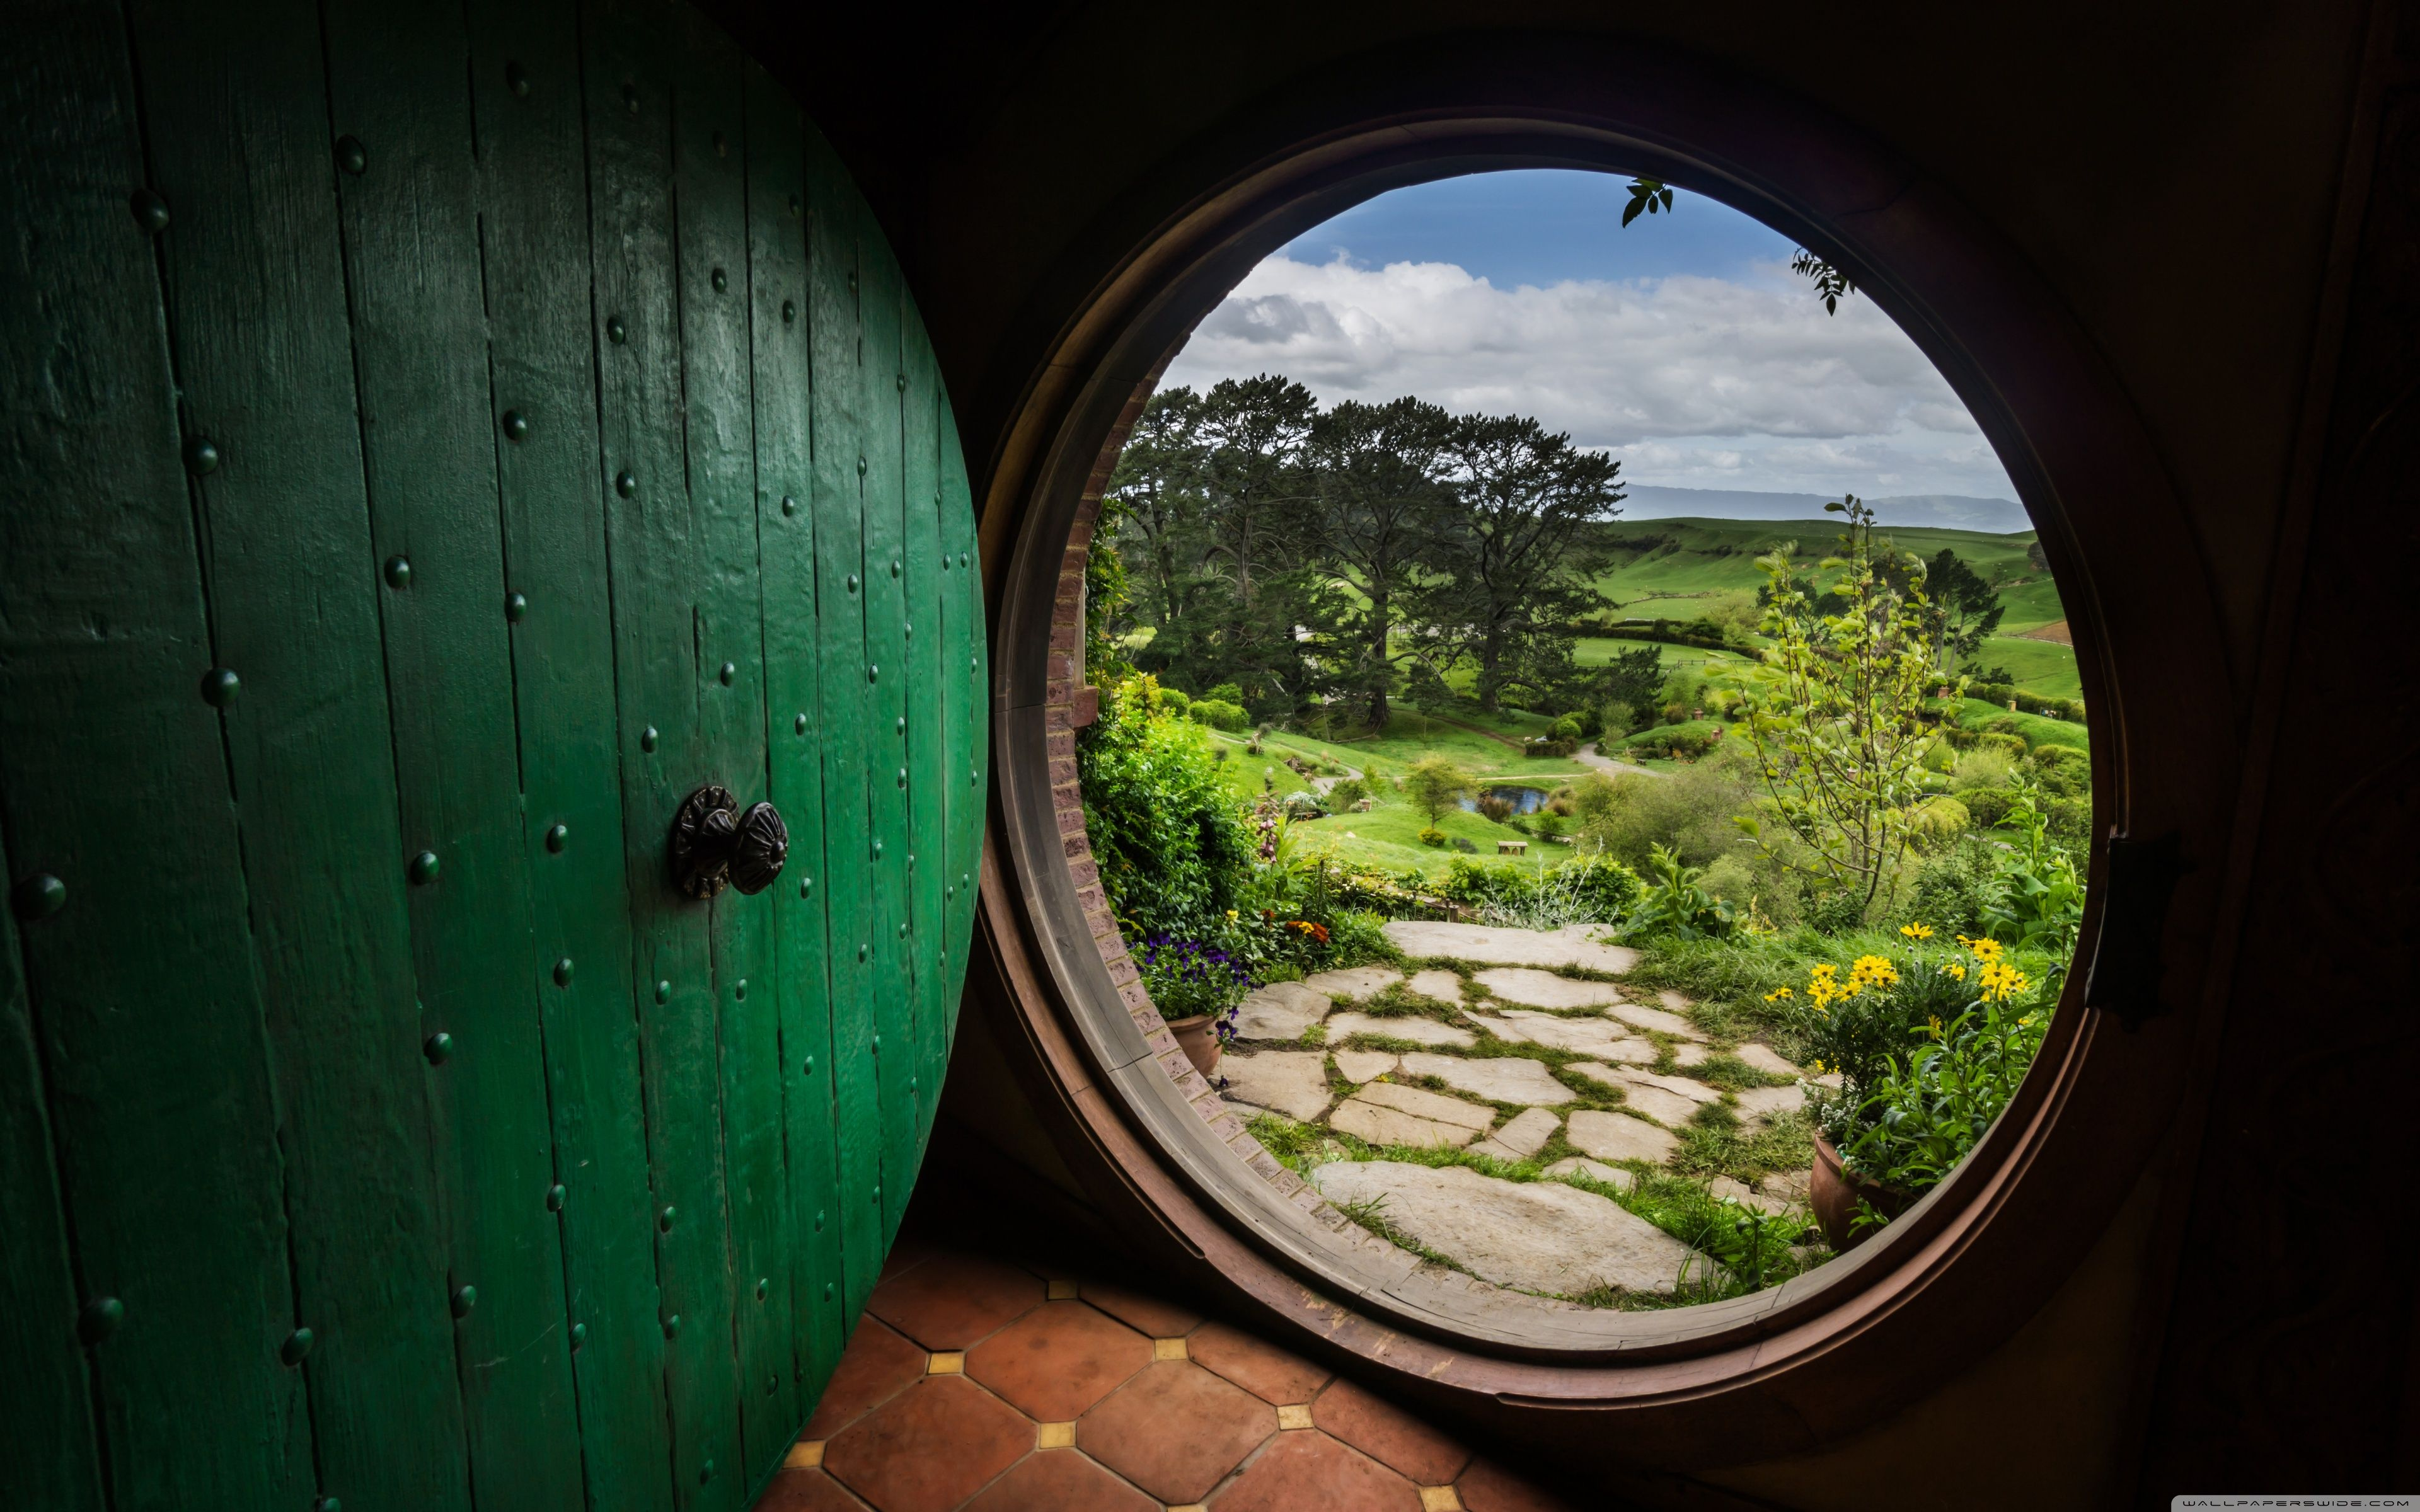 Hobbit Hole Wallpapers - Top Free Hobbit Hole Backgrounds